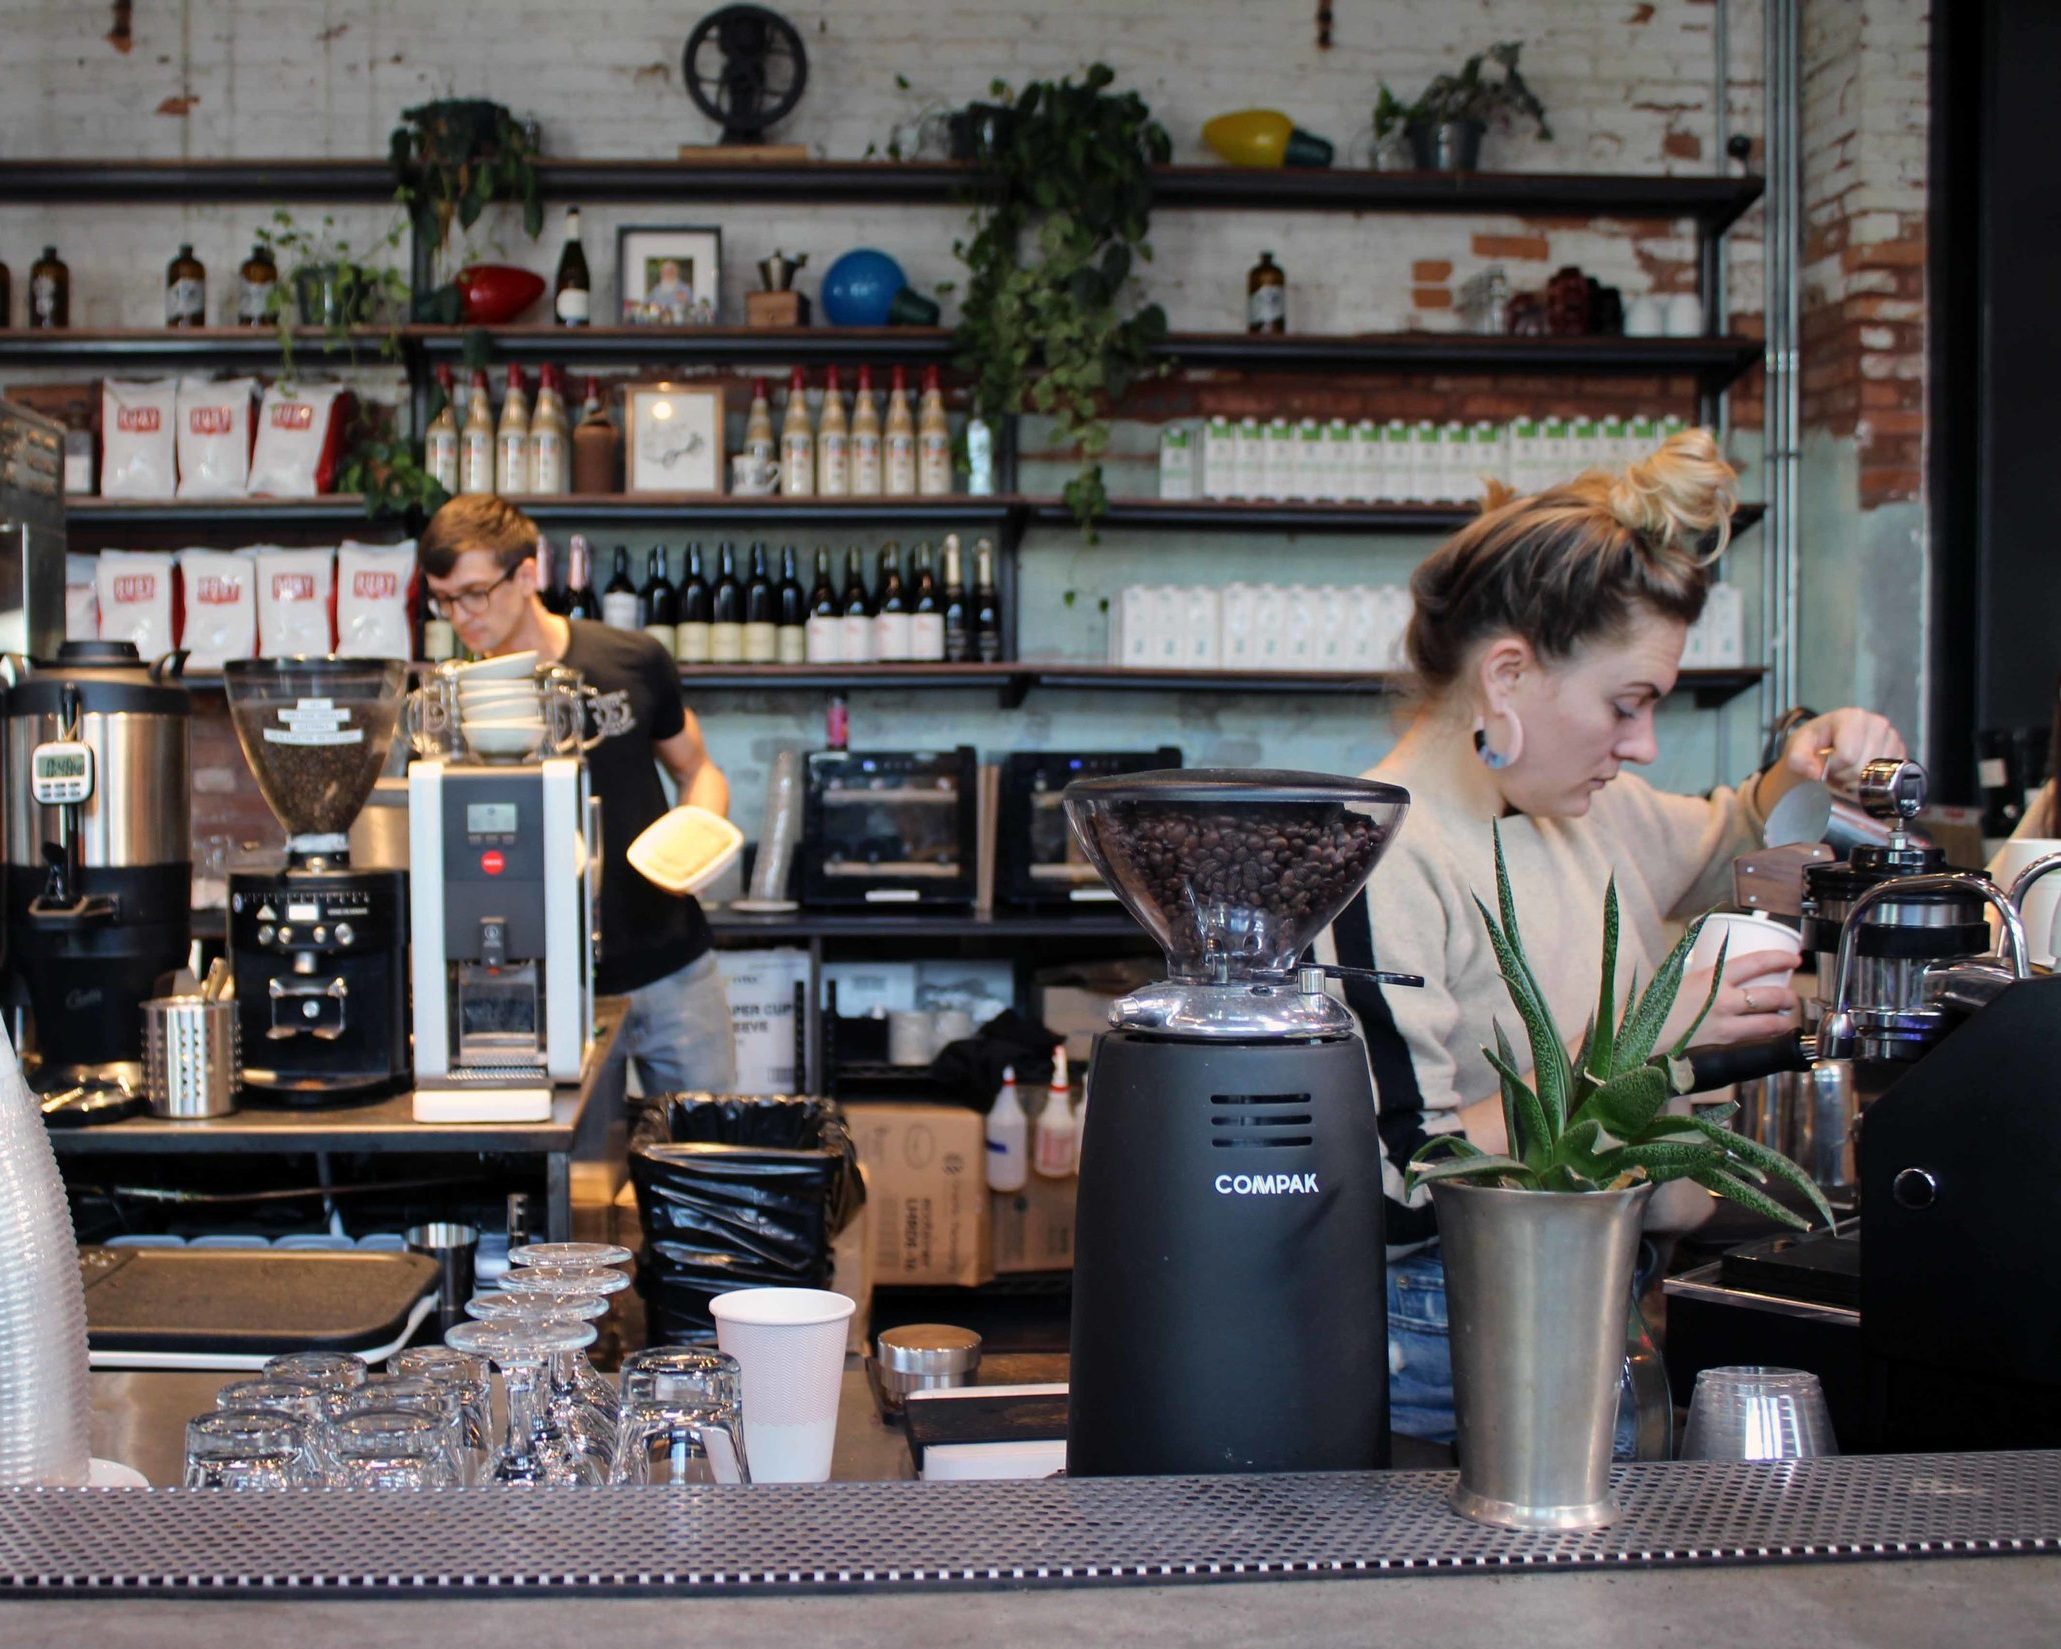 The baristas at work at Union, By Commune and Co. in Armature Works